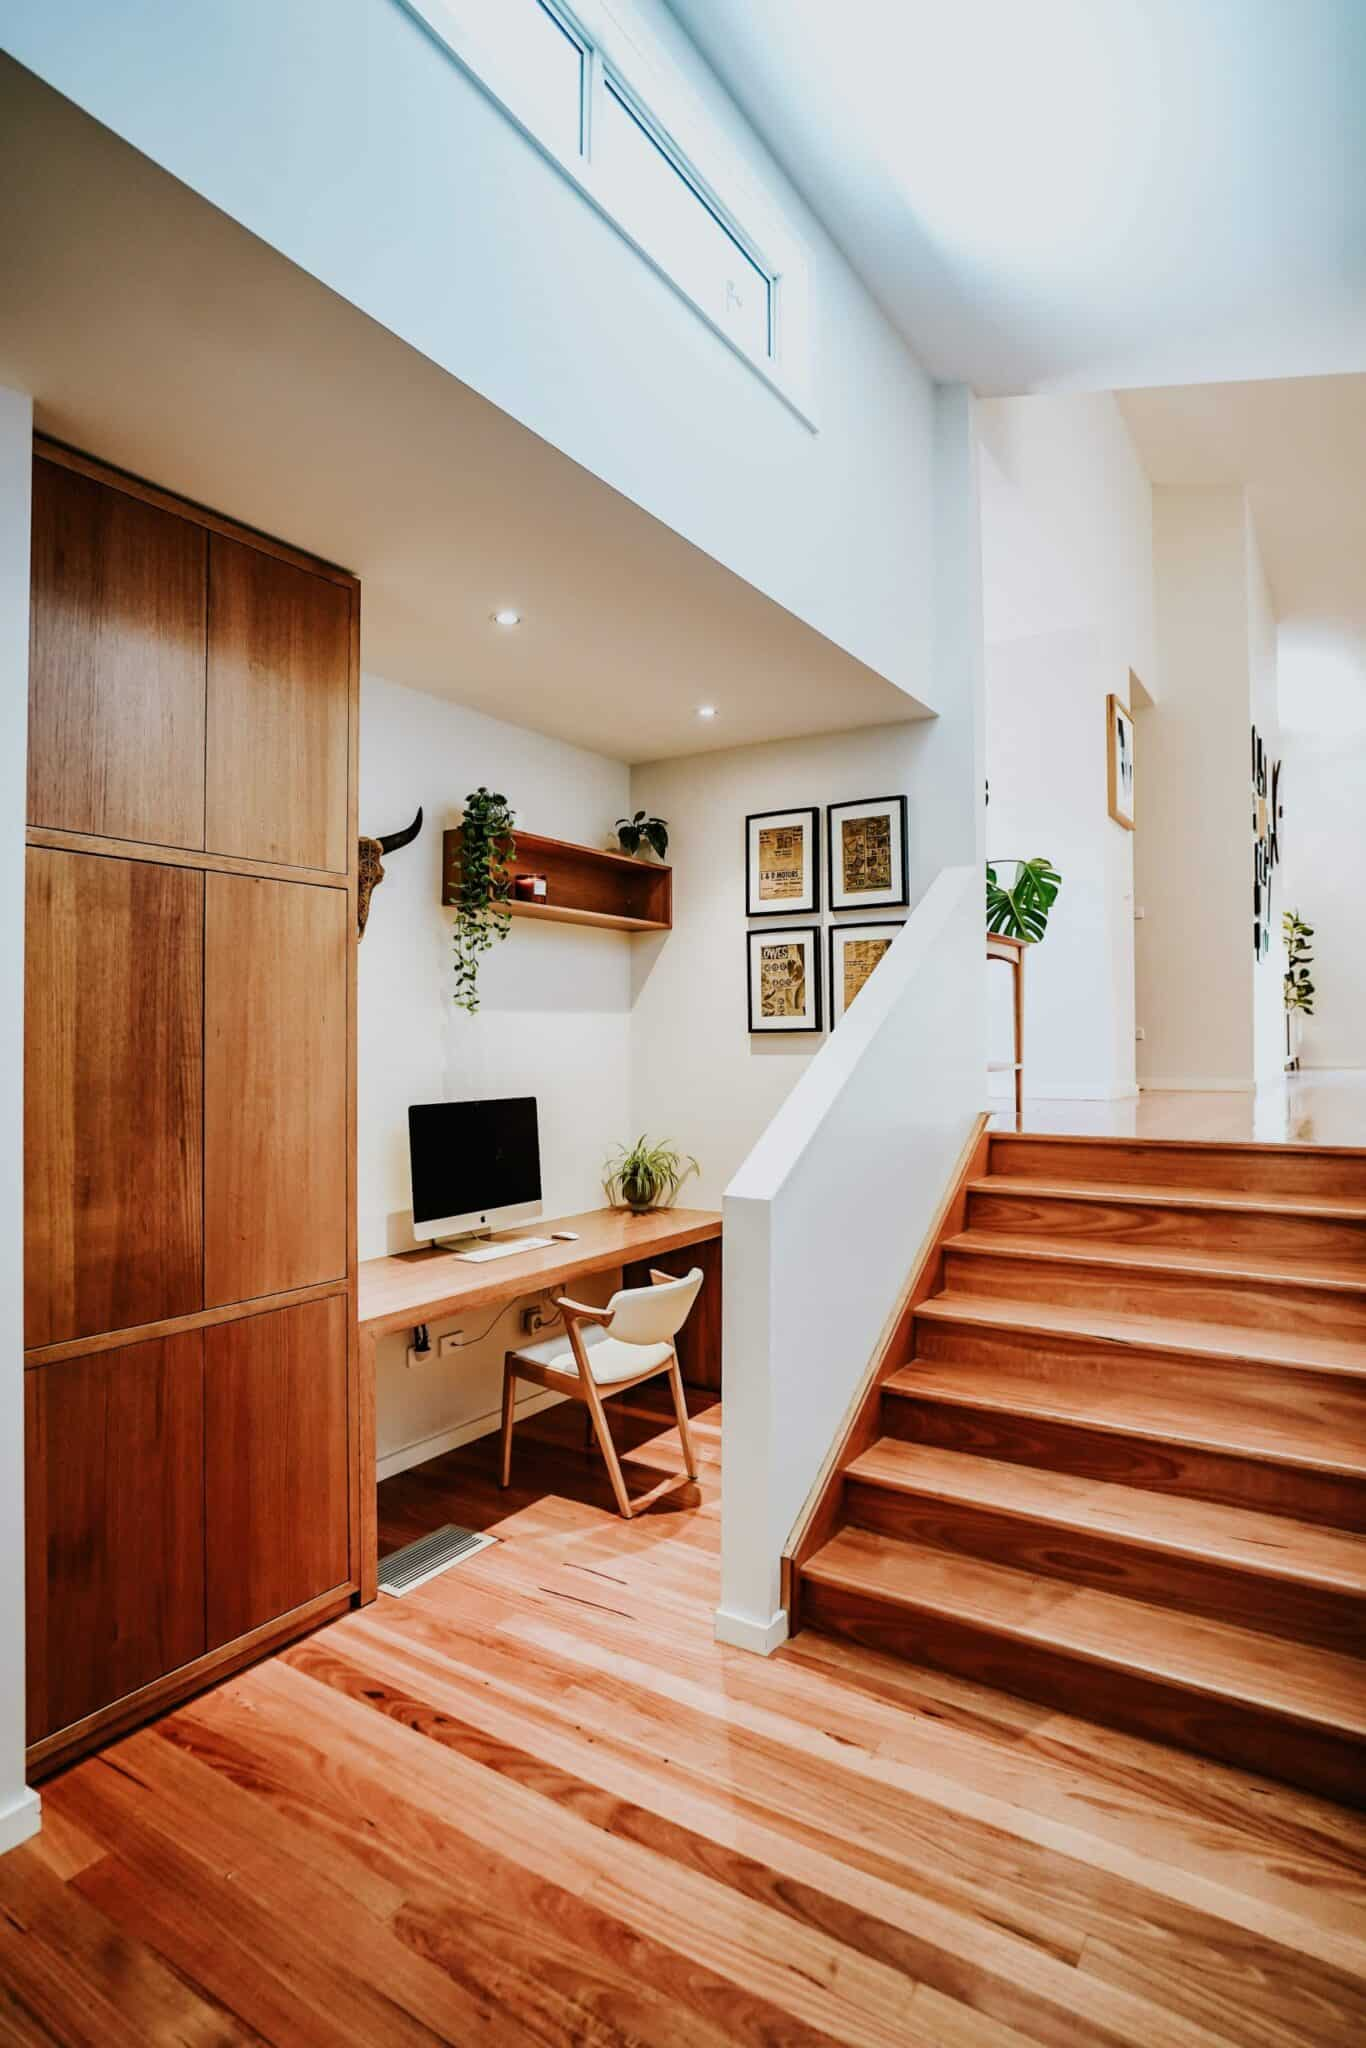 Locspec Building Oak Flats Renovation - stairs and desk space